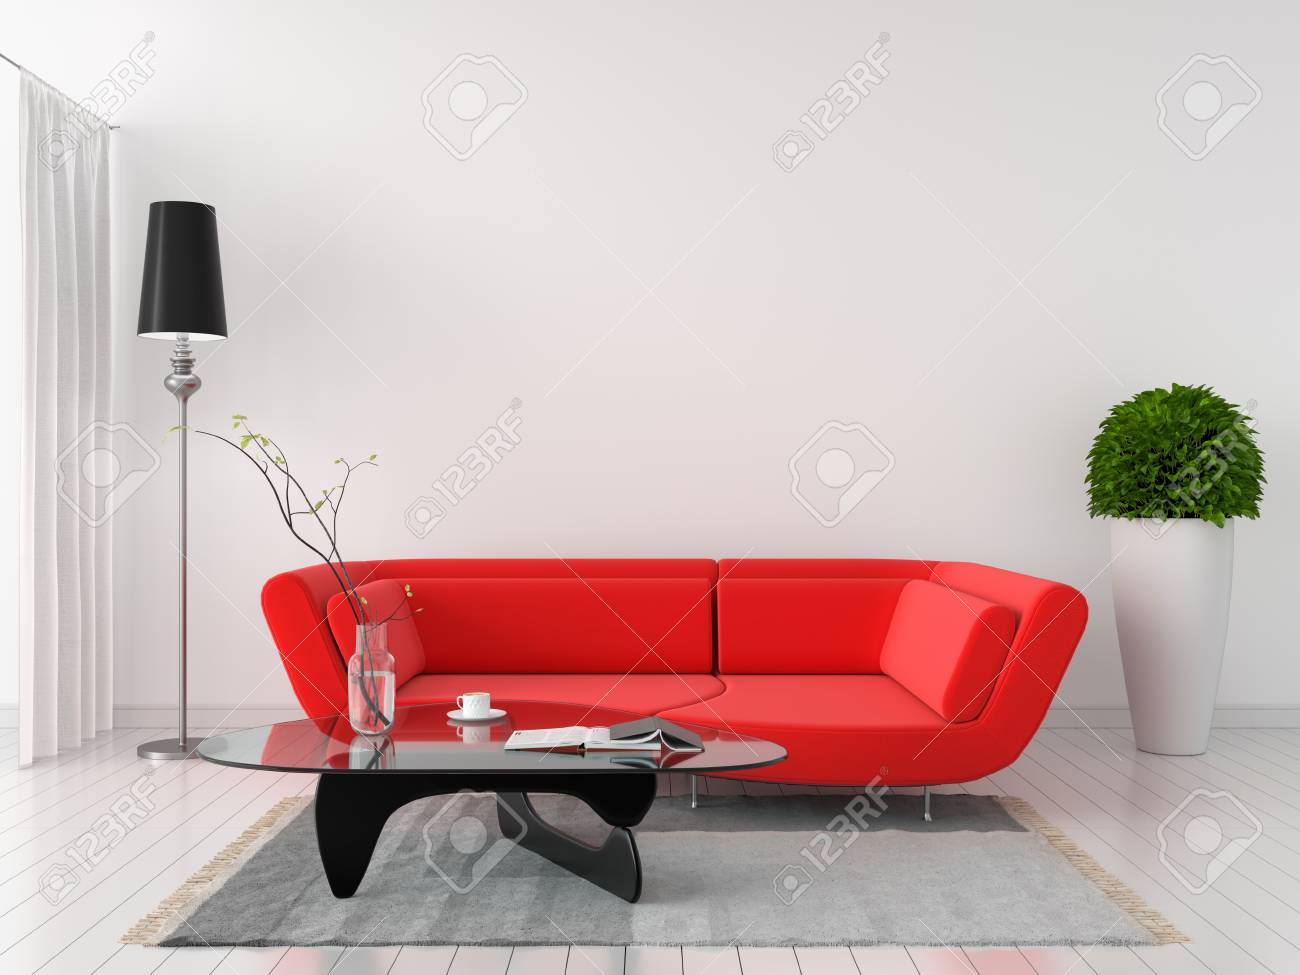 red modern sofa in white room interior, 3D rendering